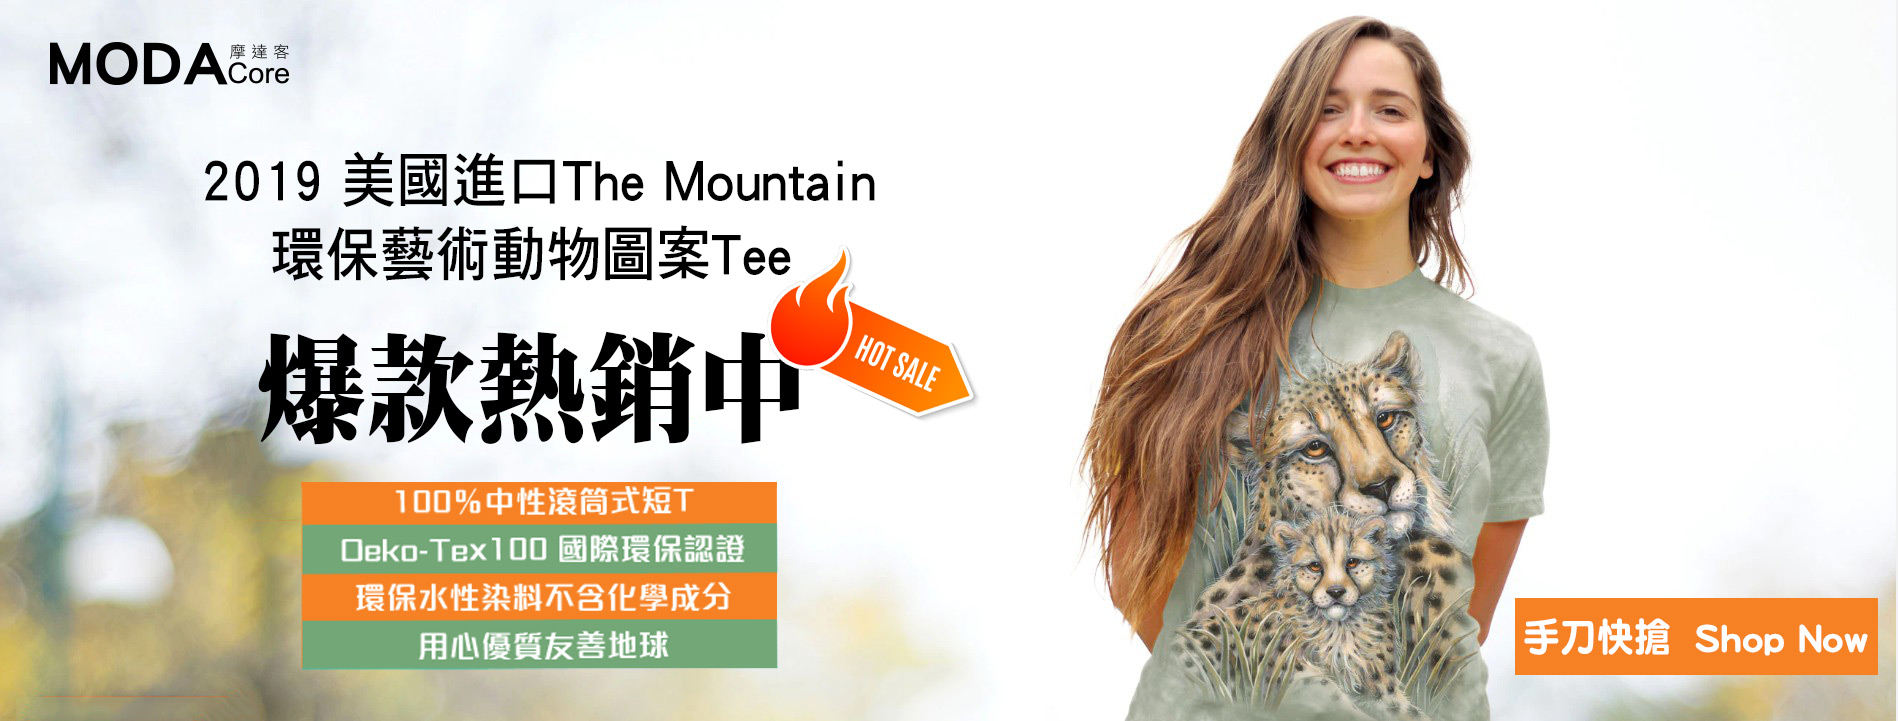 摩達客,Modacore,the mountain,達摩克,摩達客,動物T,T shirt